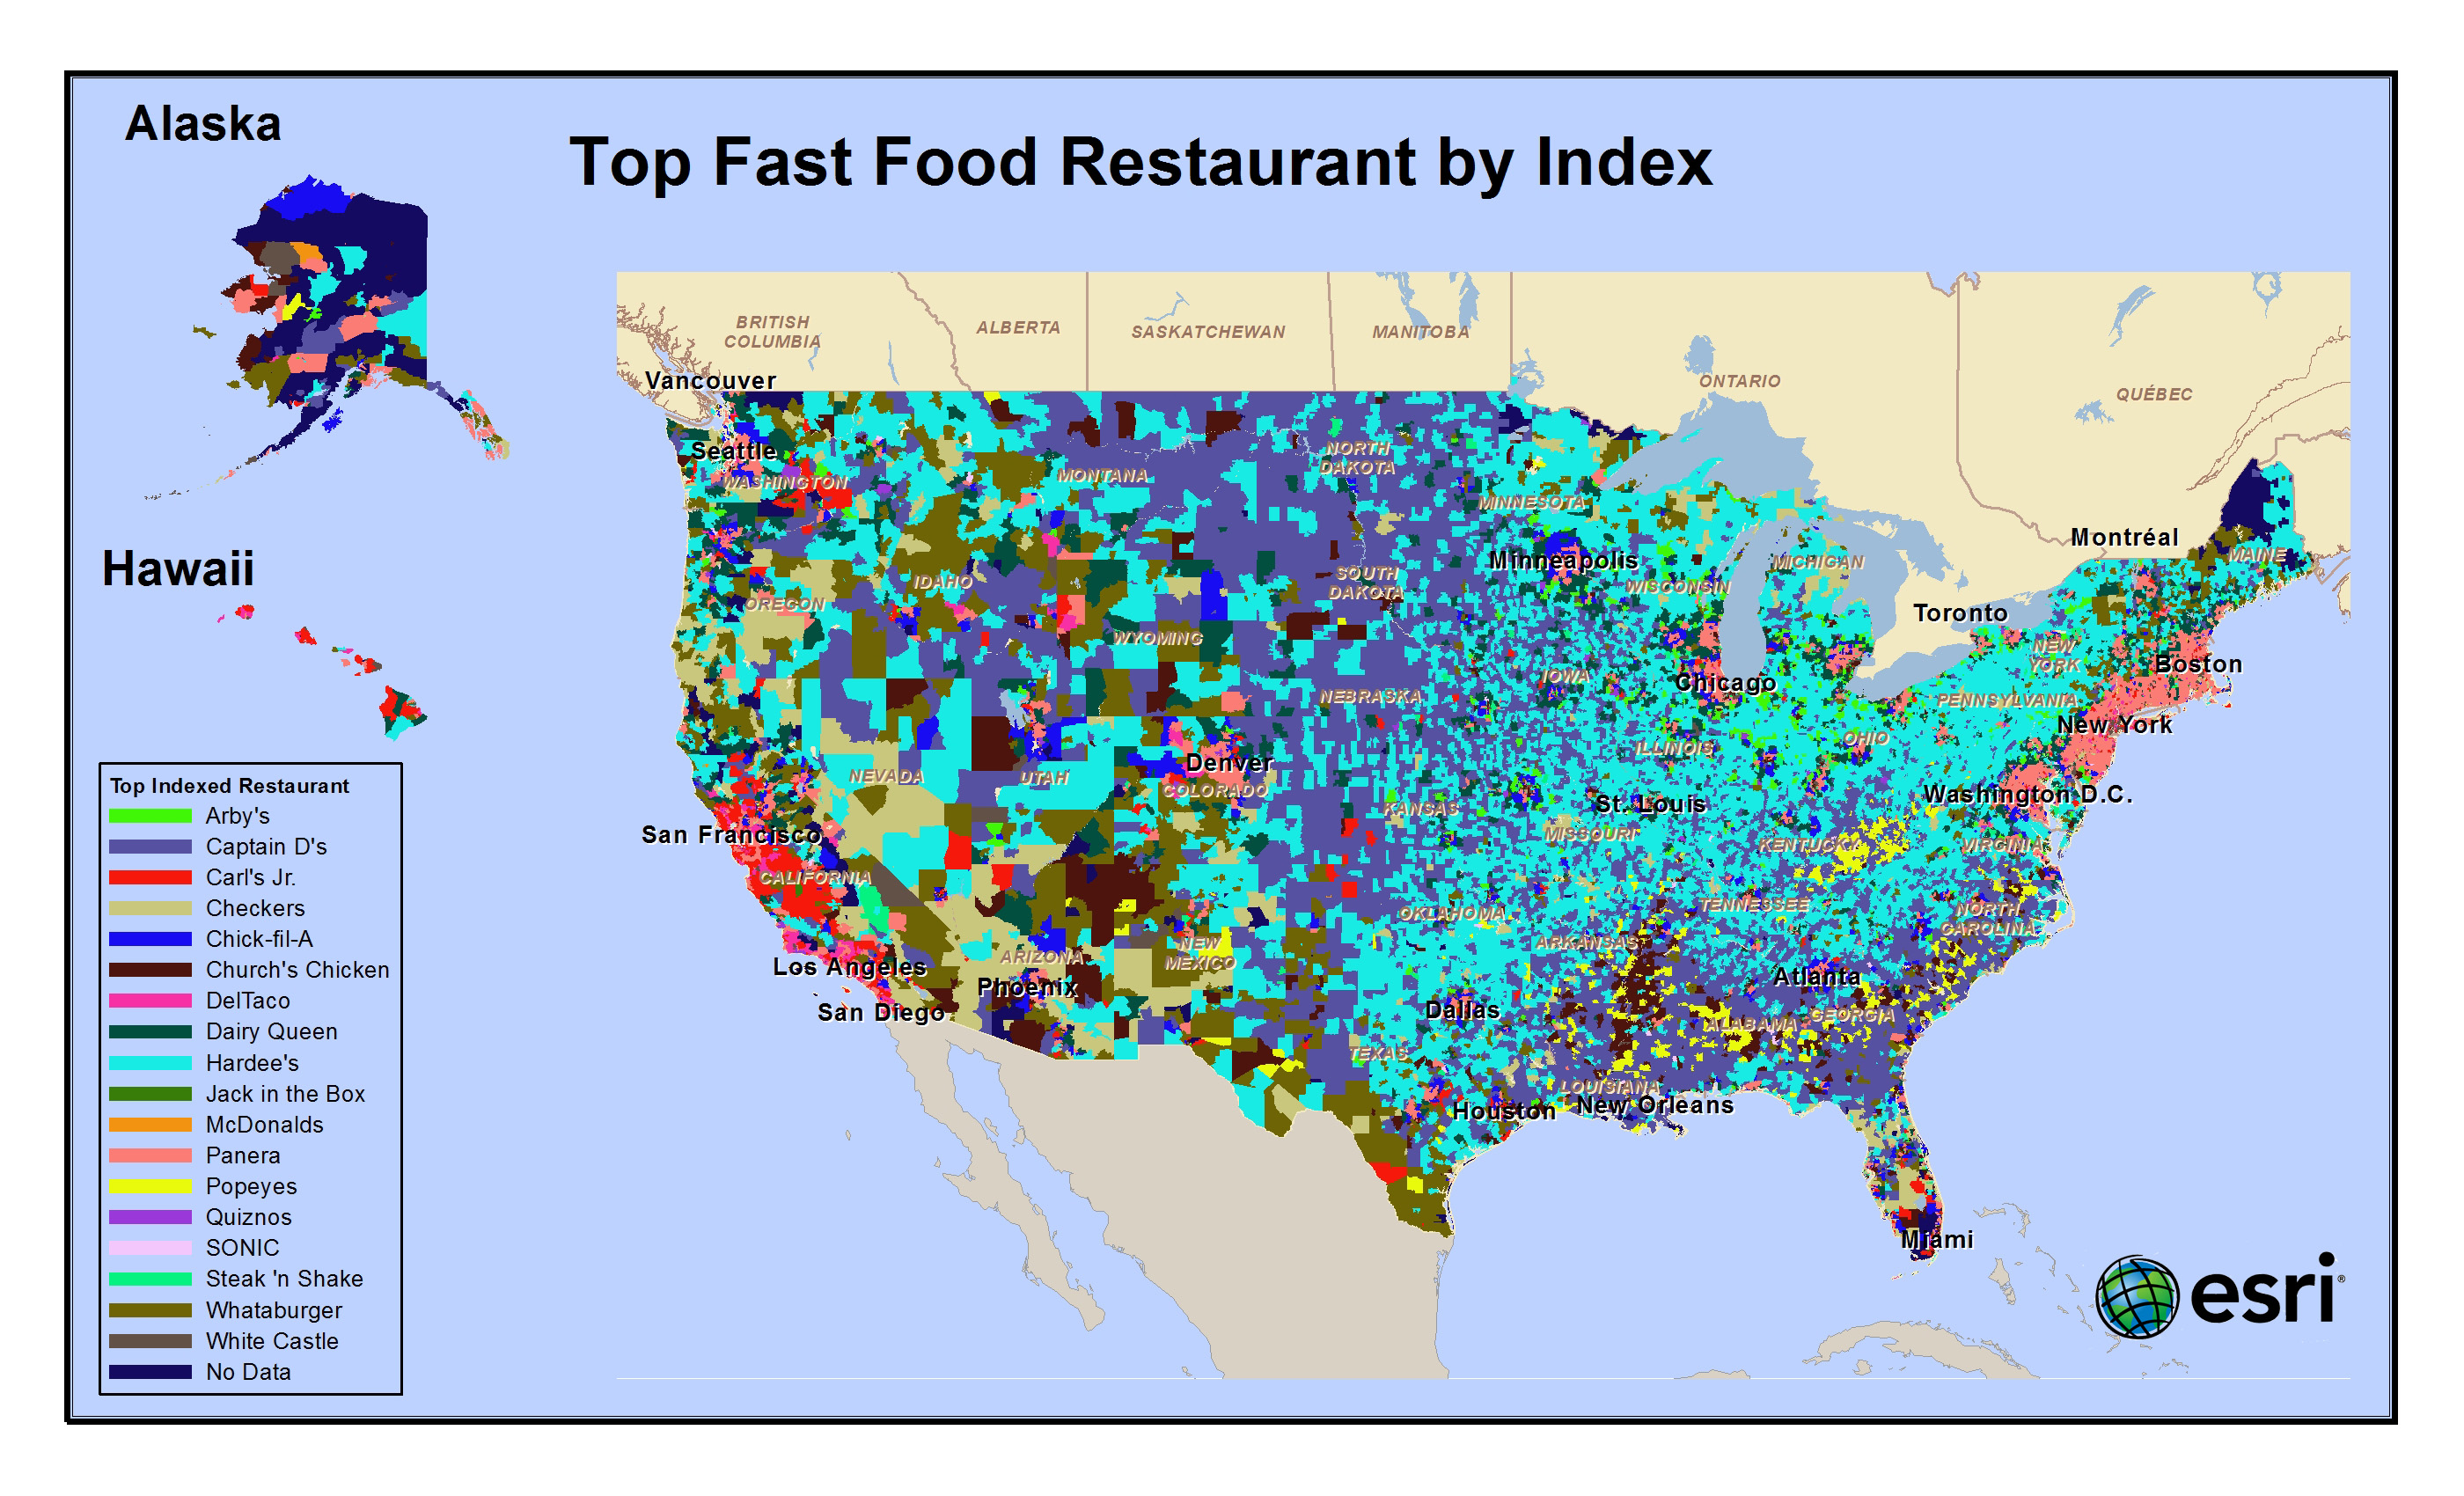 Pamallisondot  wordpress on taco bell locations map